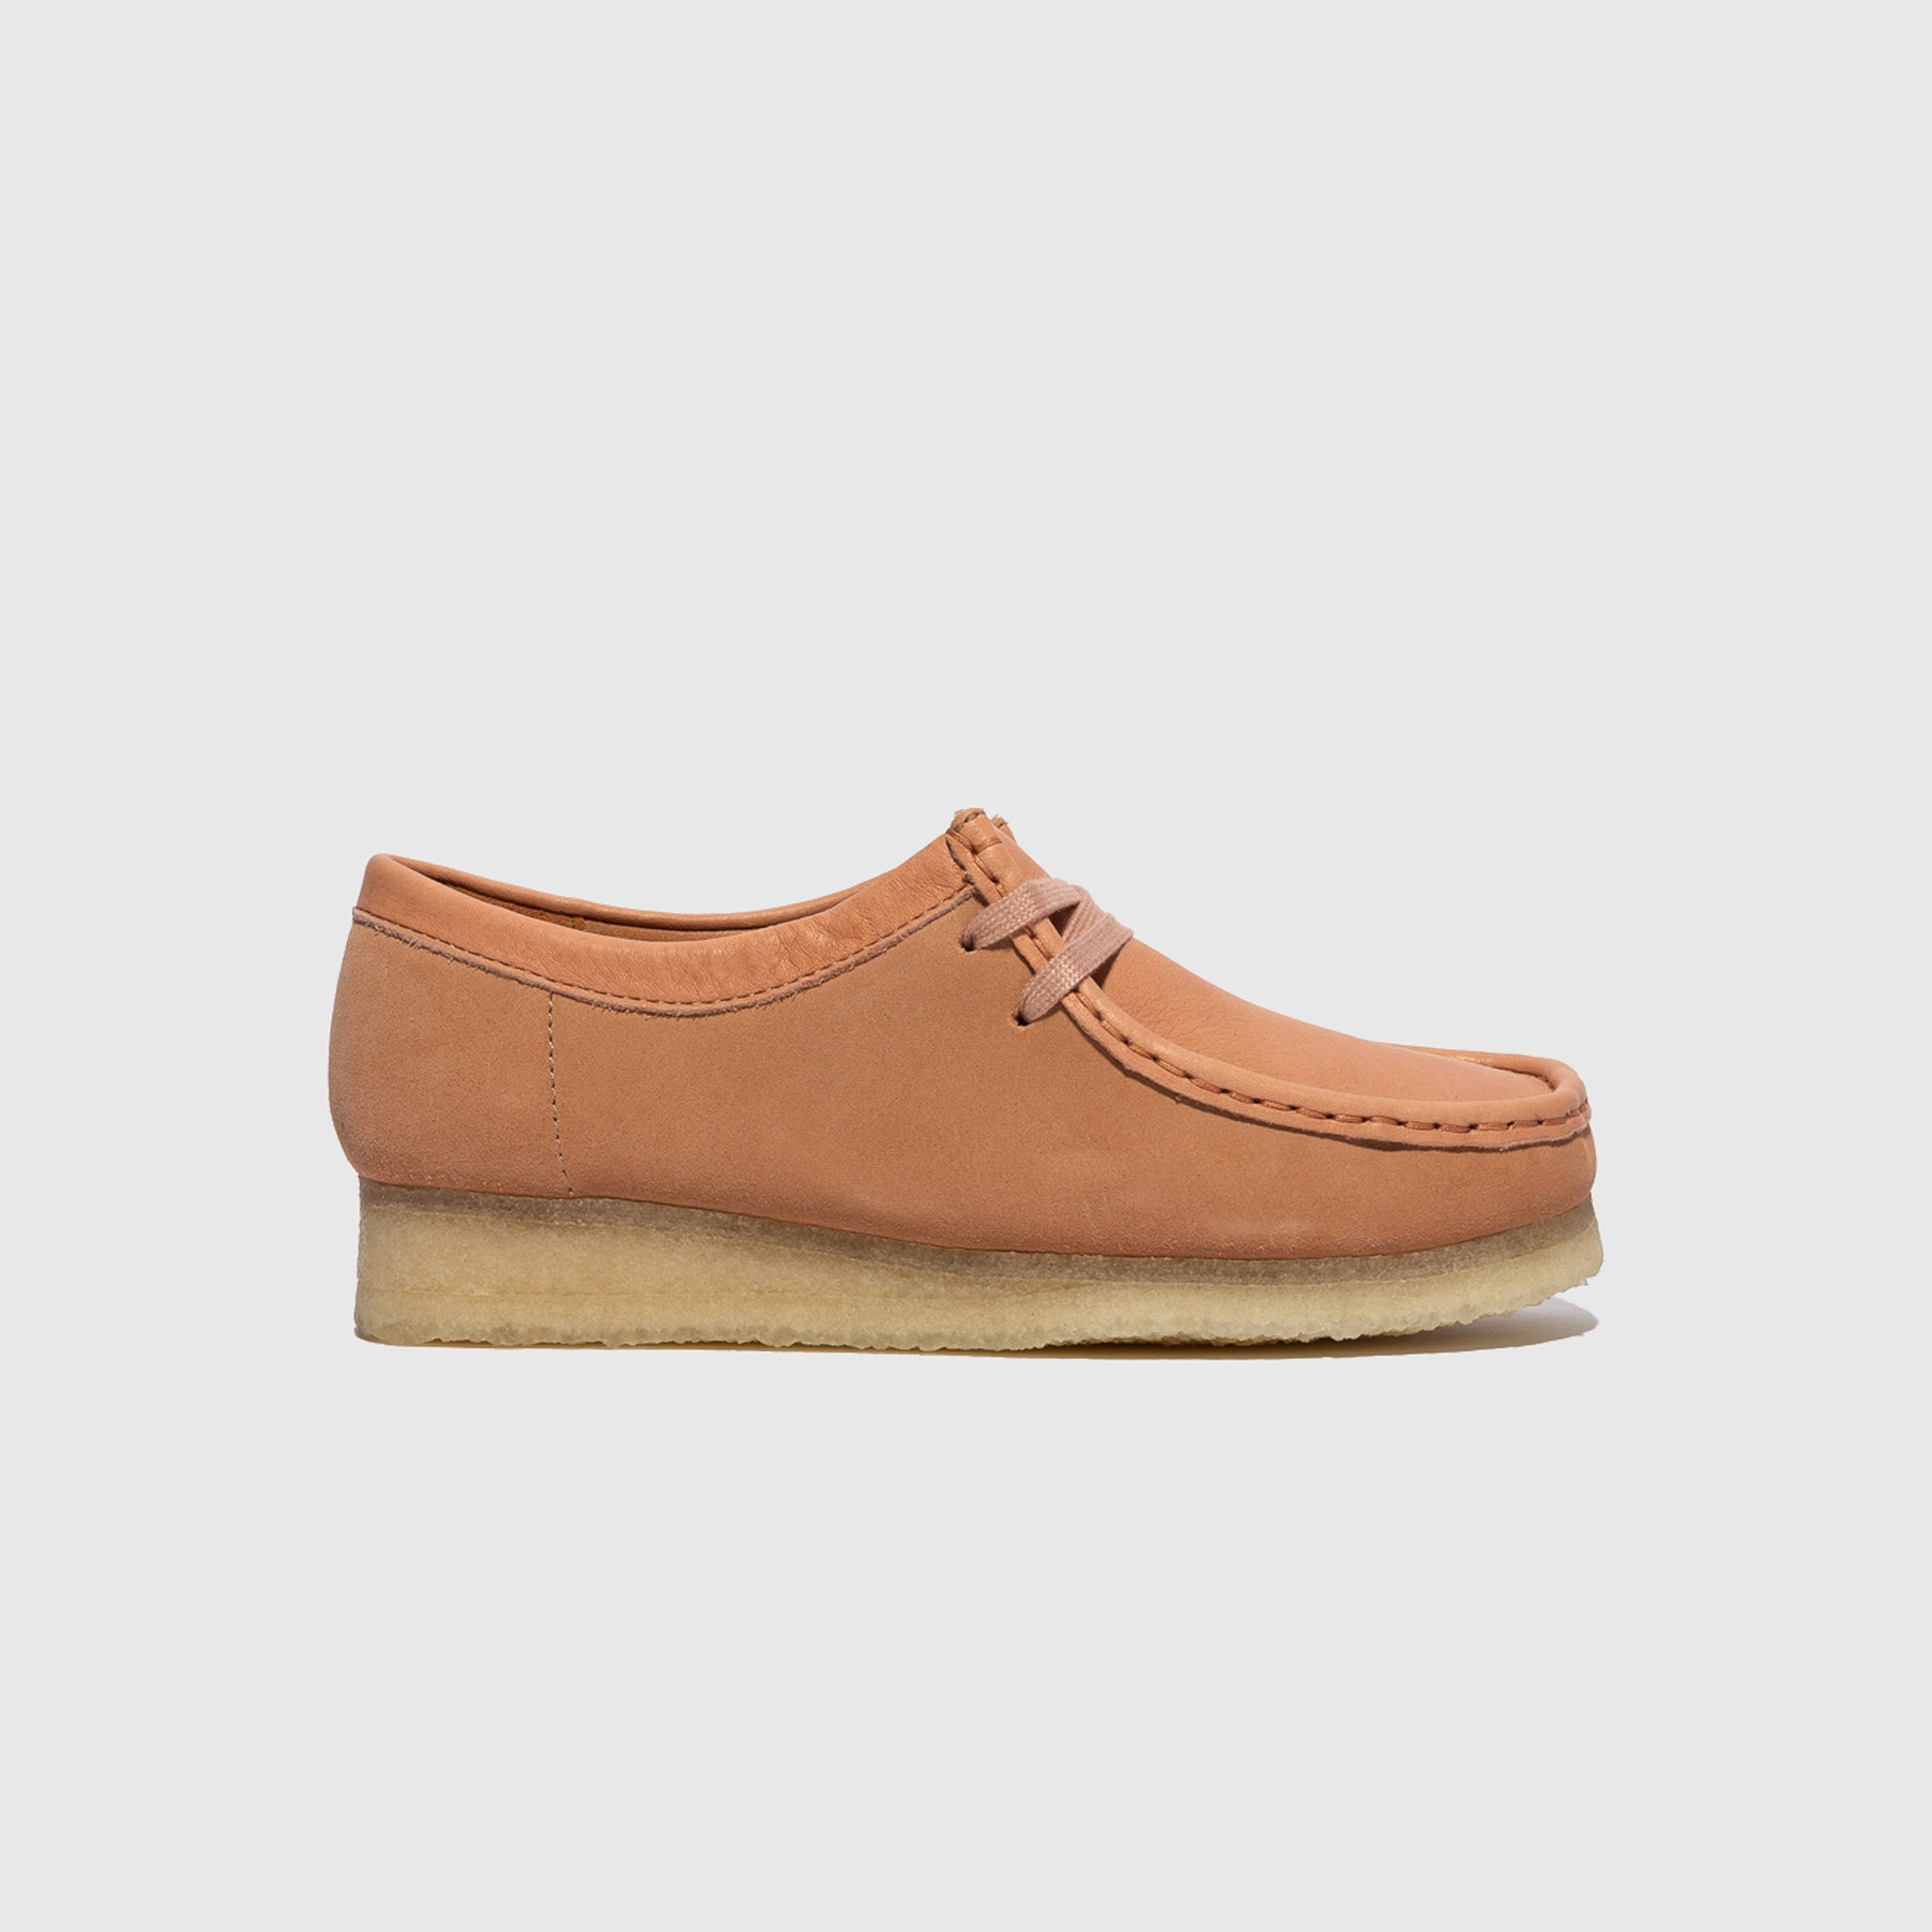 CLARKS ORIGINALS WALLABEE WMNS LO